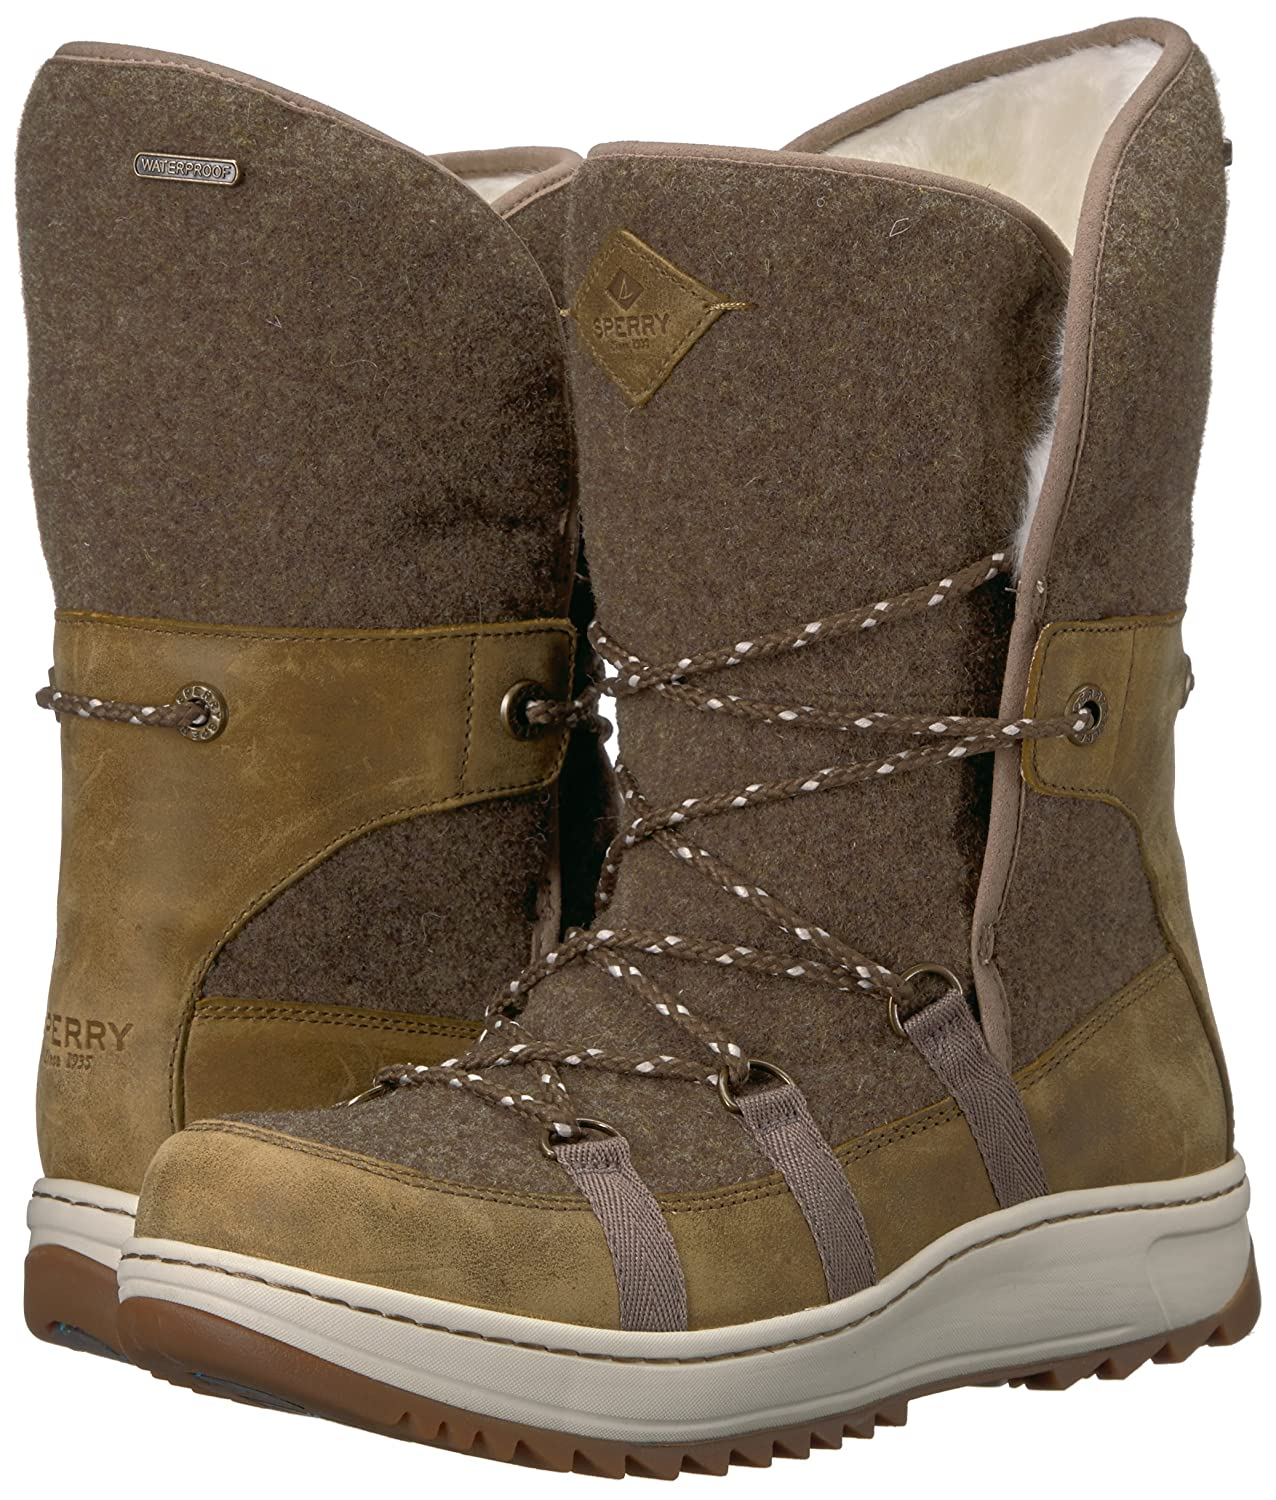 Sperry Cap Top-Sider Women's Powder Ice Cap Sperry Snow Boot B01N6IYWW4 5 B(M) US|Olive a93634